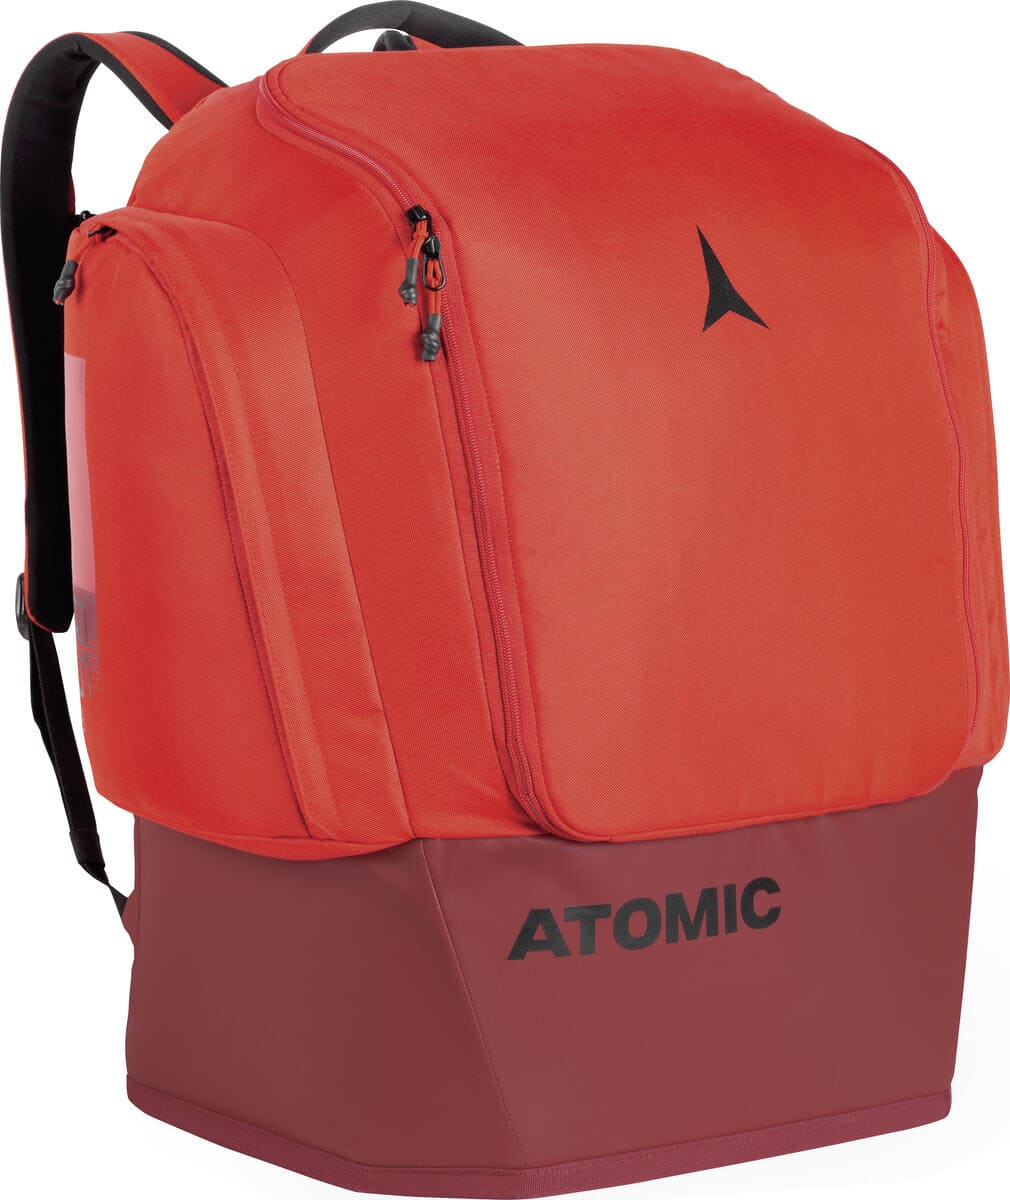 ATOMIC RS HEATED BOOT PACK 230V Red/Rio Red